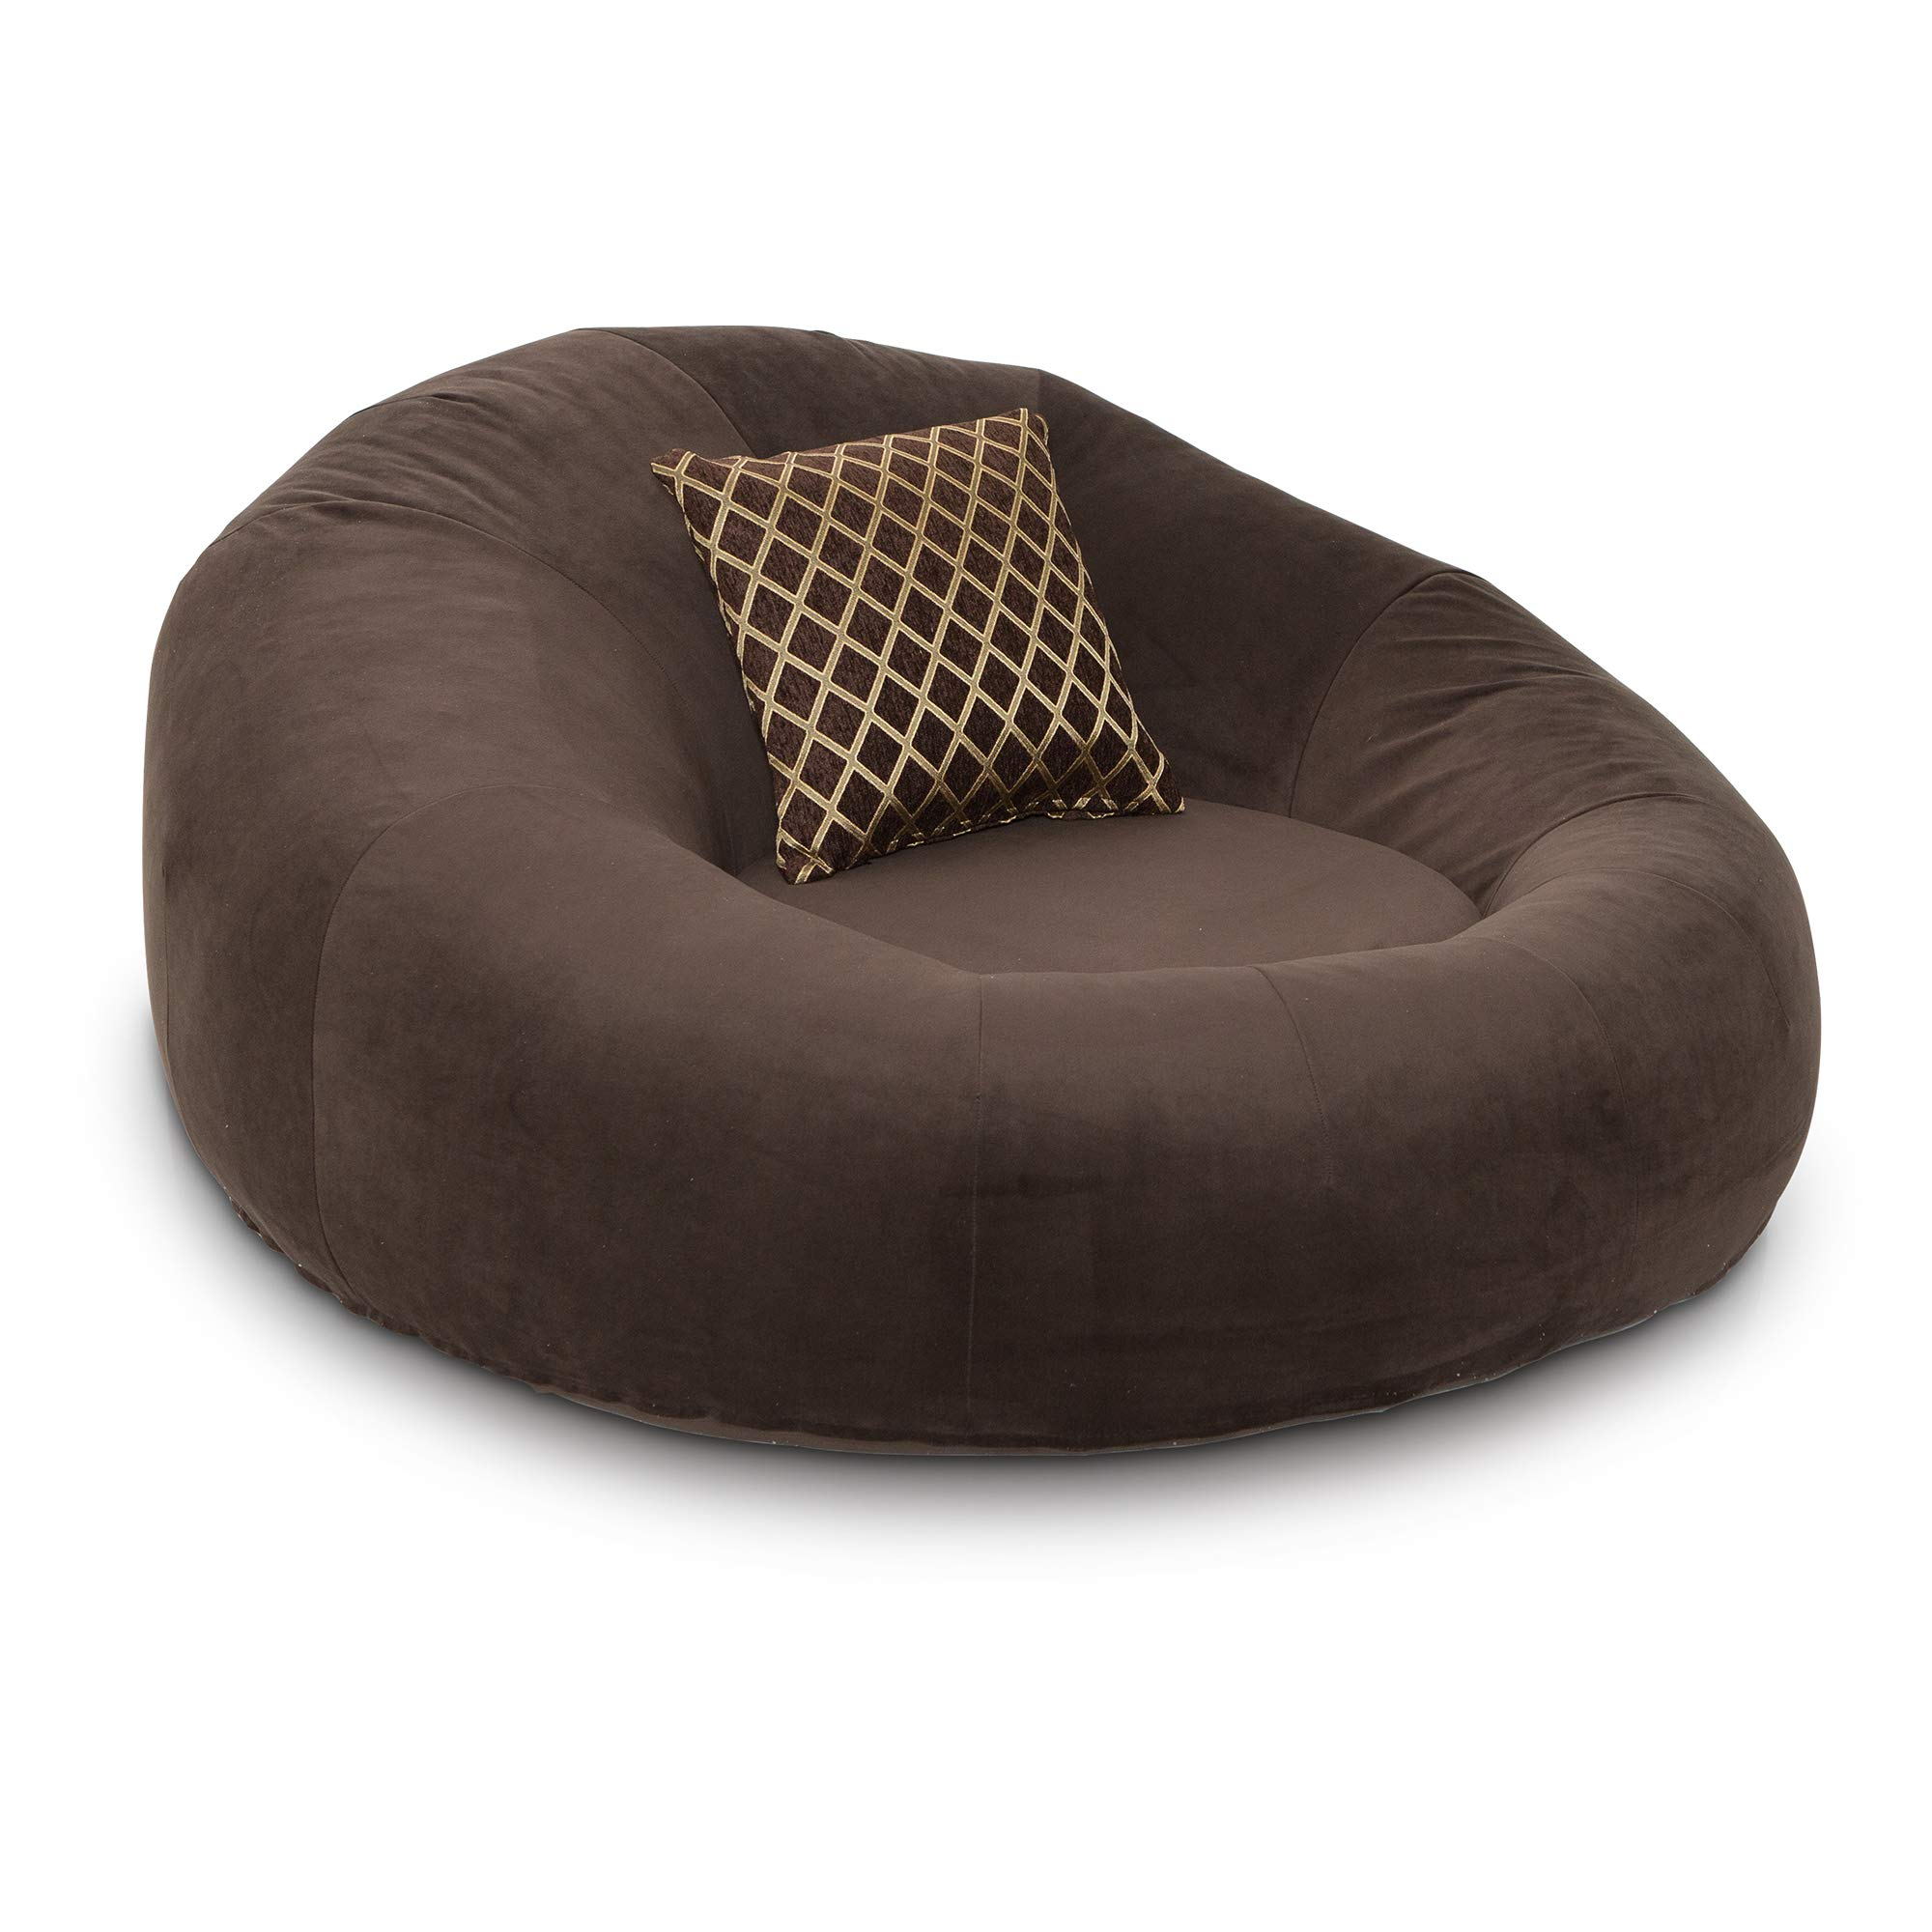 Seatcraft 1971 Bella Fabric Home Theater Seat Foam Round Lounge Cuddle Chair, Sofa, Brown by Seatcraft